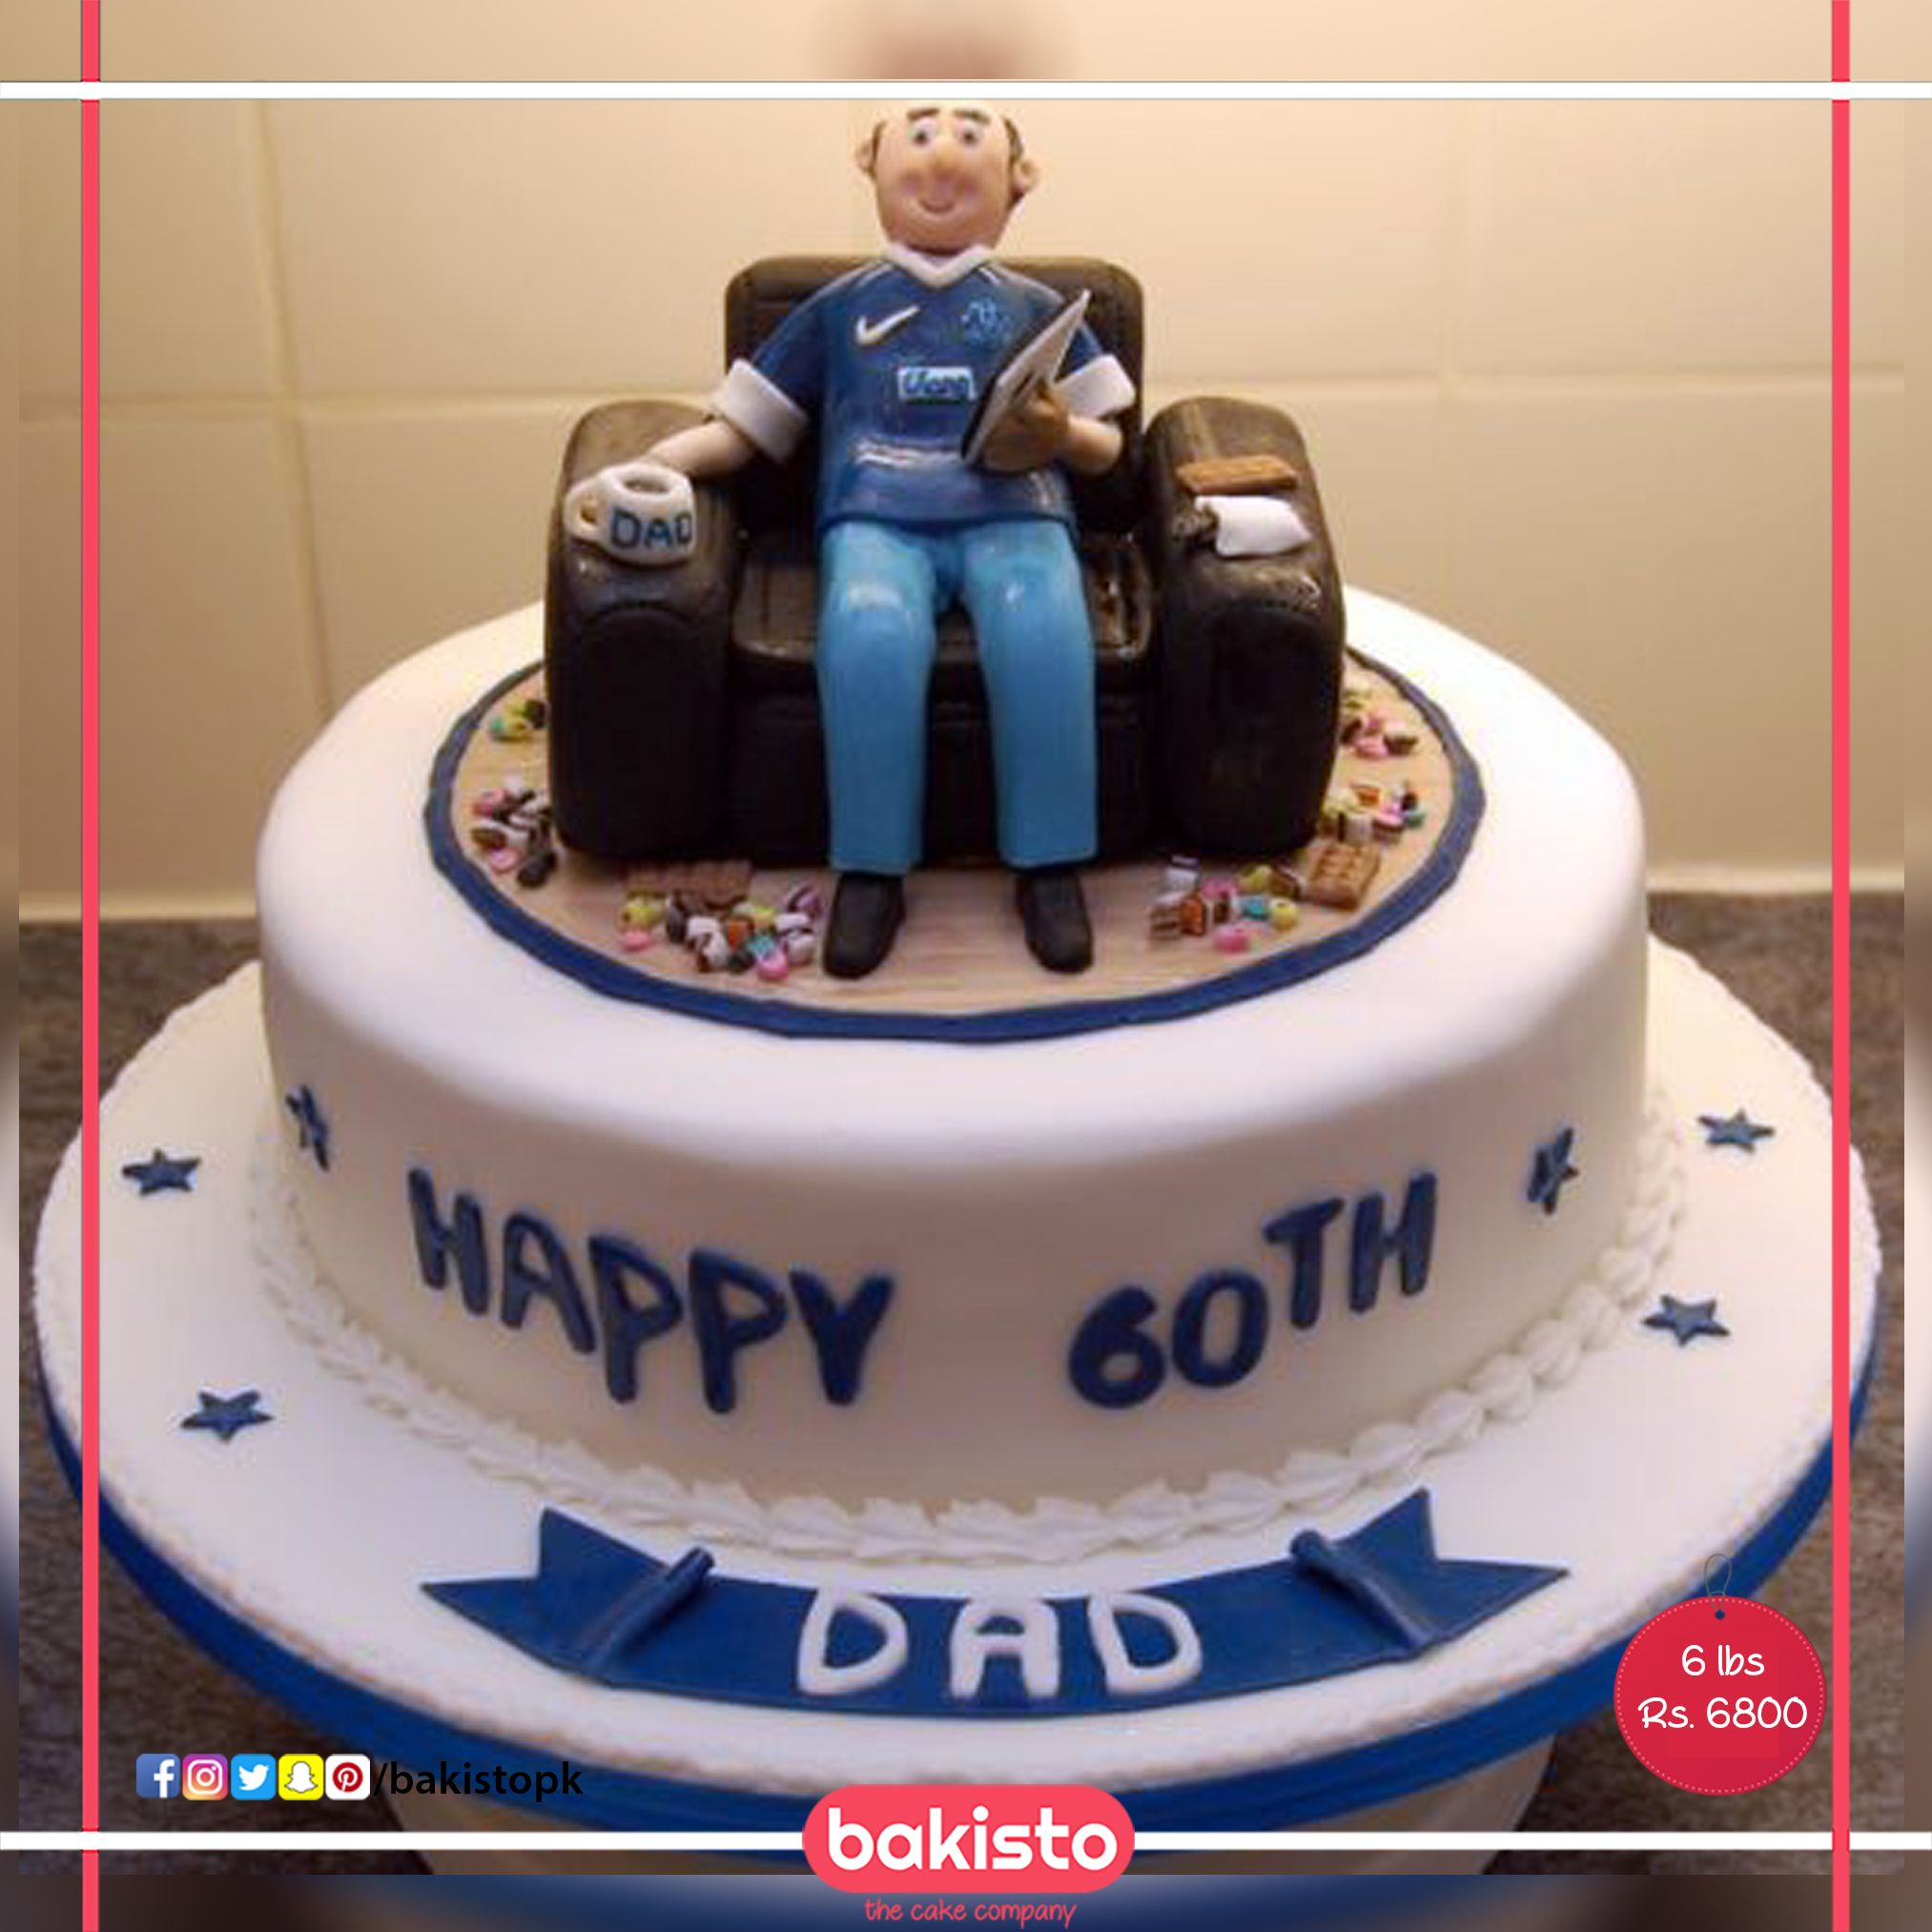 Fabulous Checkout This Awesome Dad Birthday Cake Available At Bakisto Funny Birthday Cards Online Necthendildamsfinfo